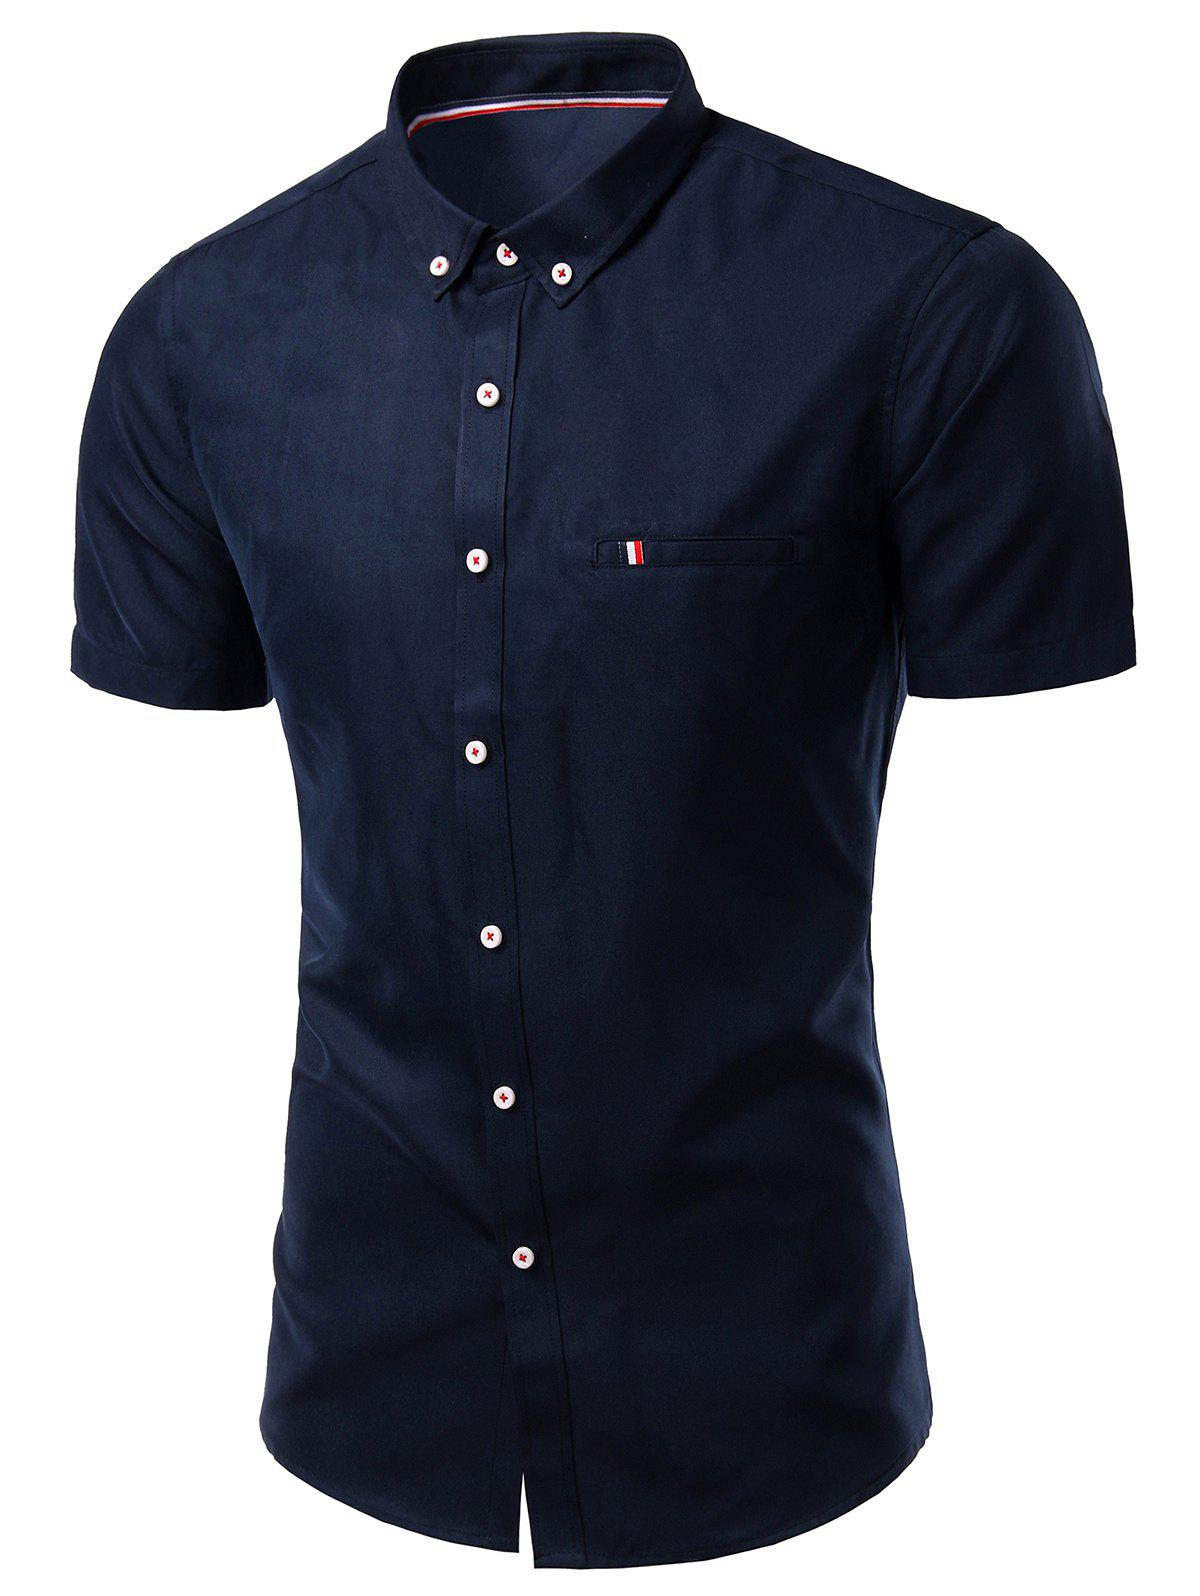 Modish Turn-Down Collar Short Sleeve Men's Button-Down Shirt - CADETBLUE 4XL